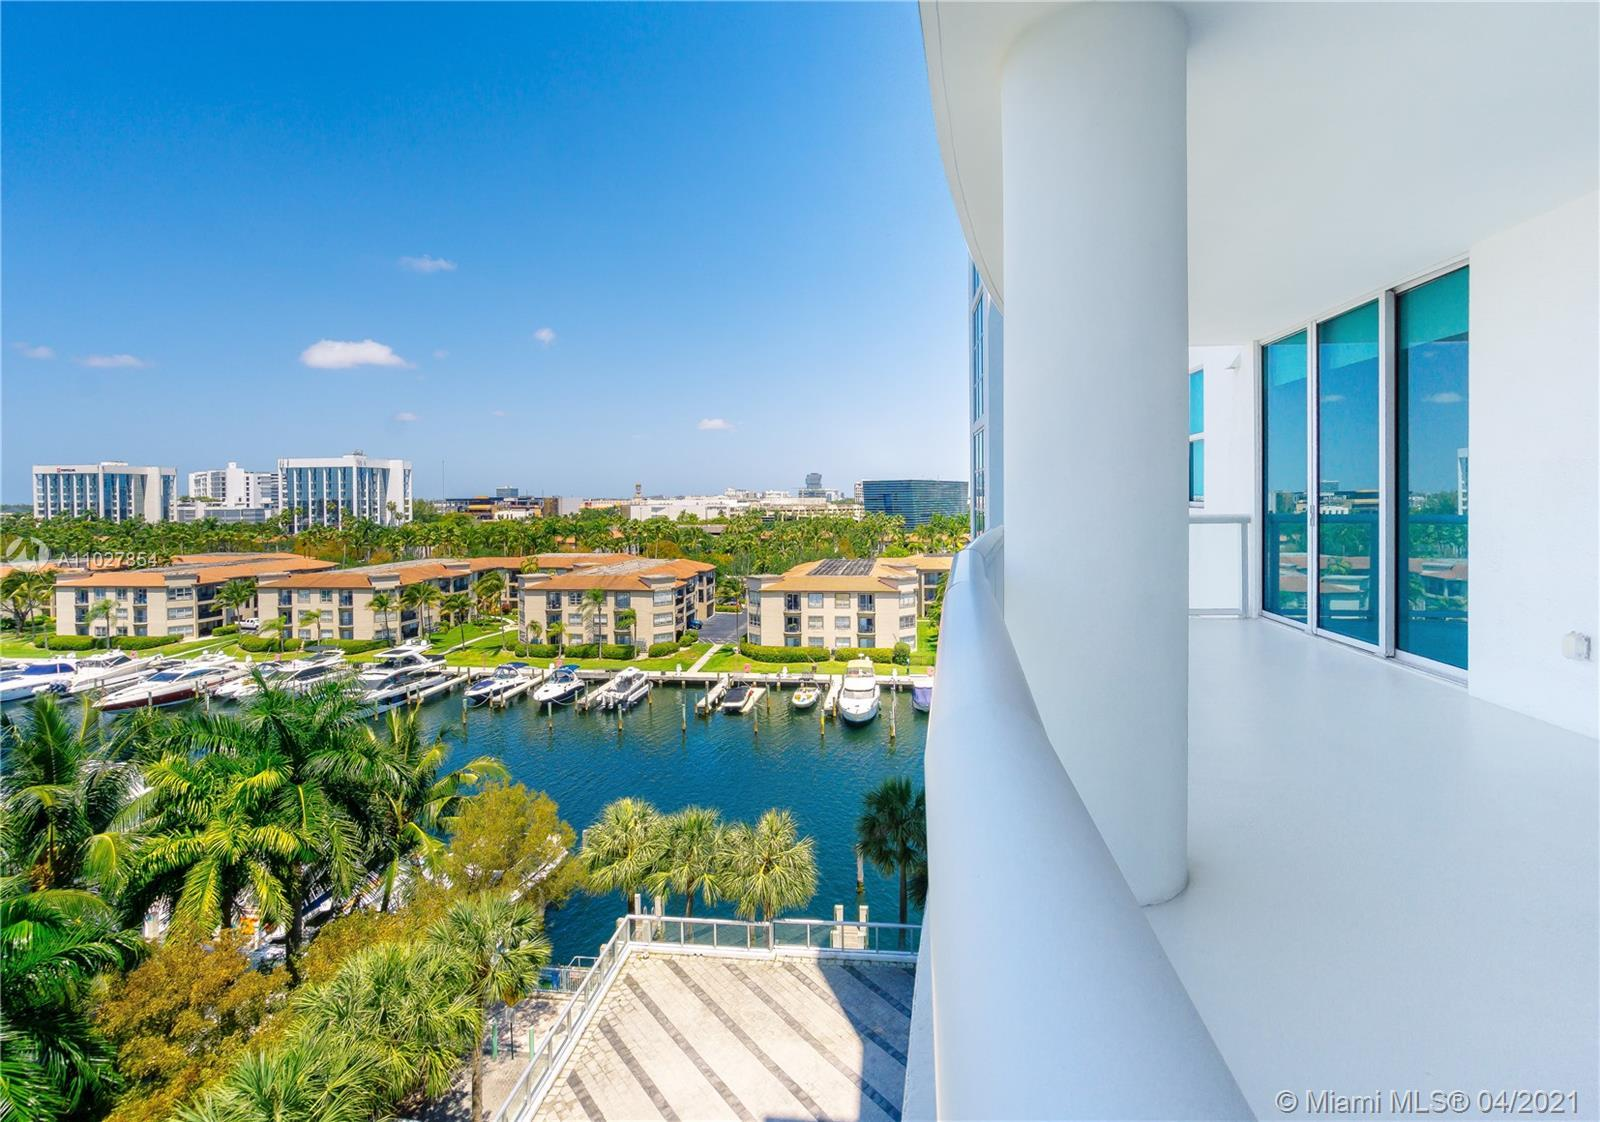 BEST LINE AND EXPOSURE .Exceptional & spacious property with an amazing view of the marina & pool, l